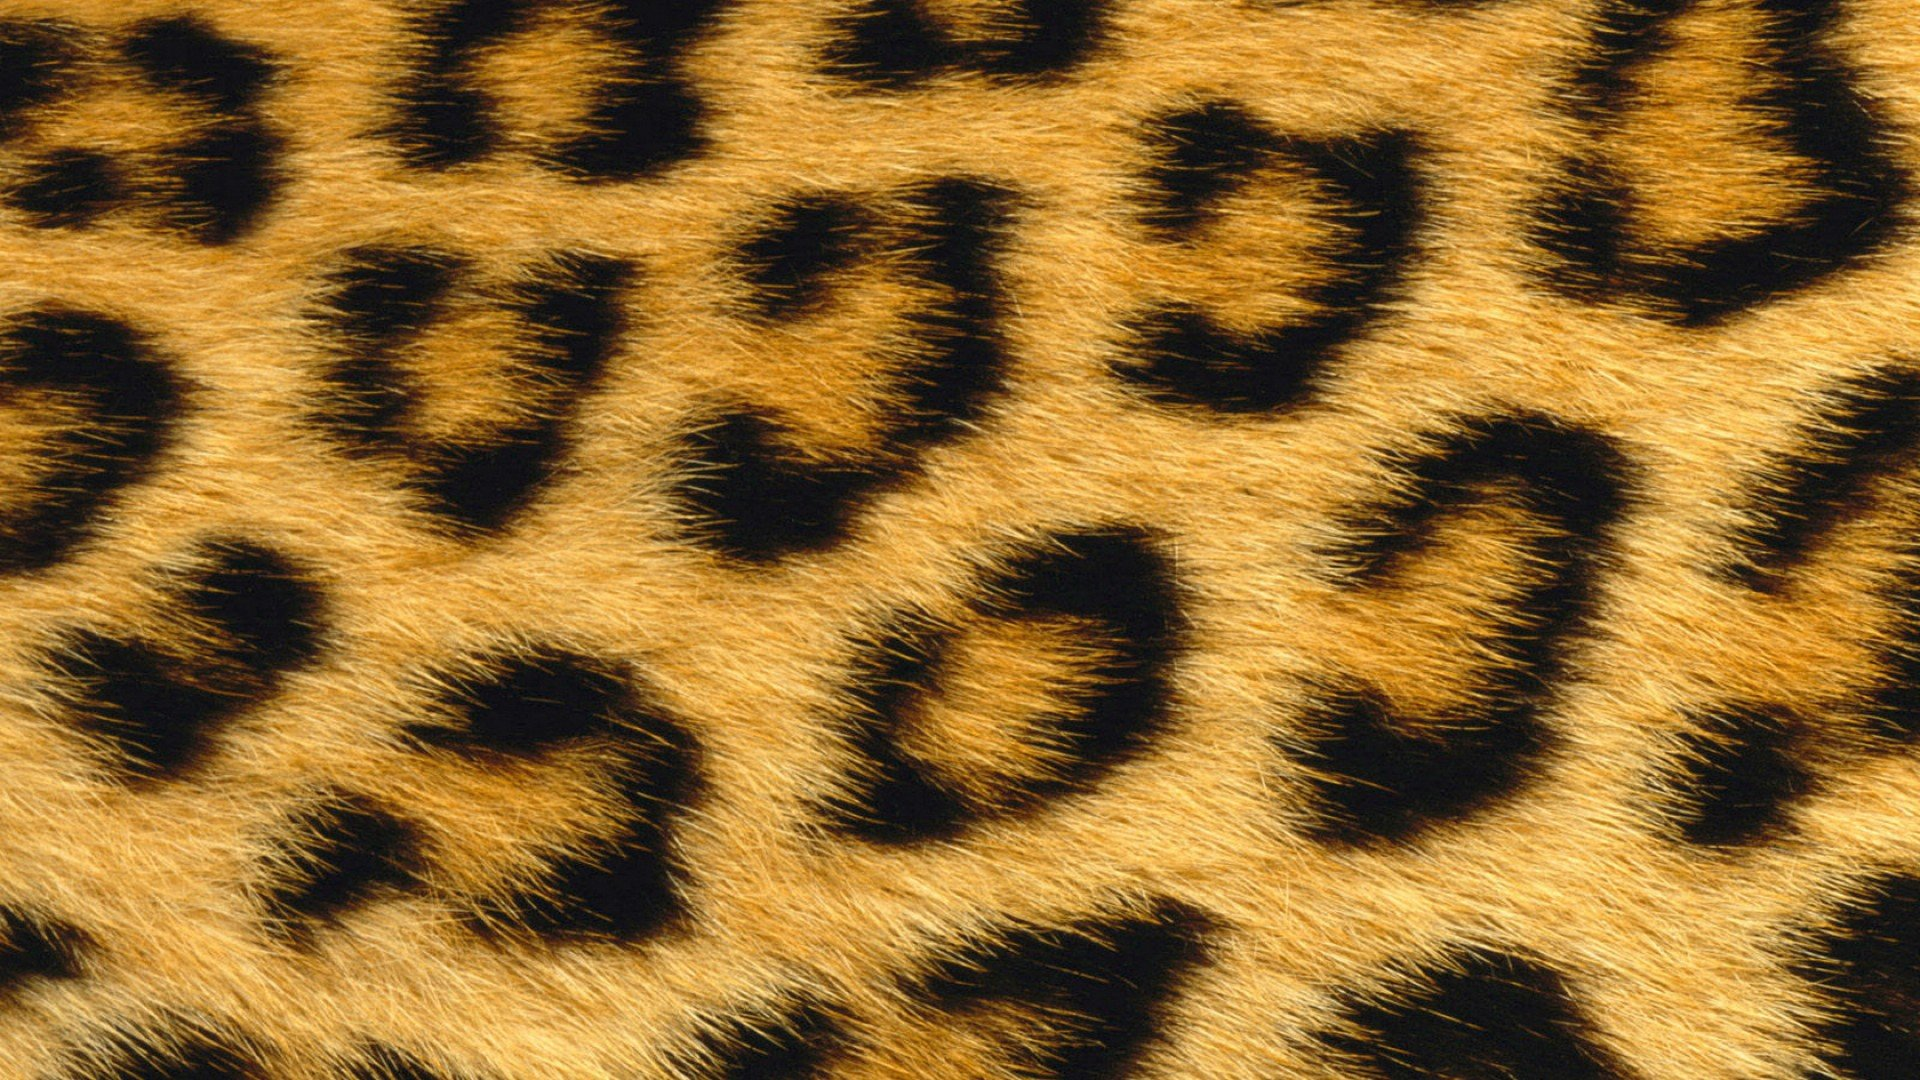 Leopard Skin Wallpapers and Background Images   stmednet 1920x1080